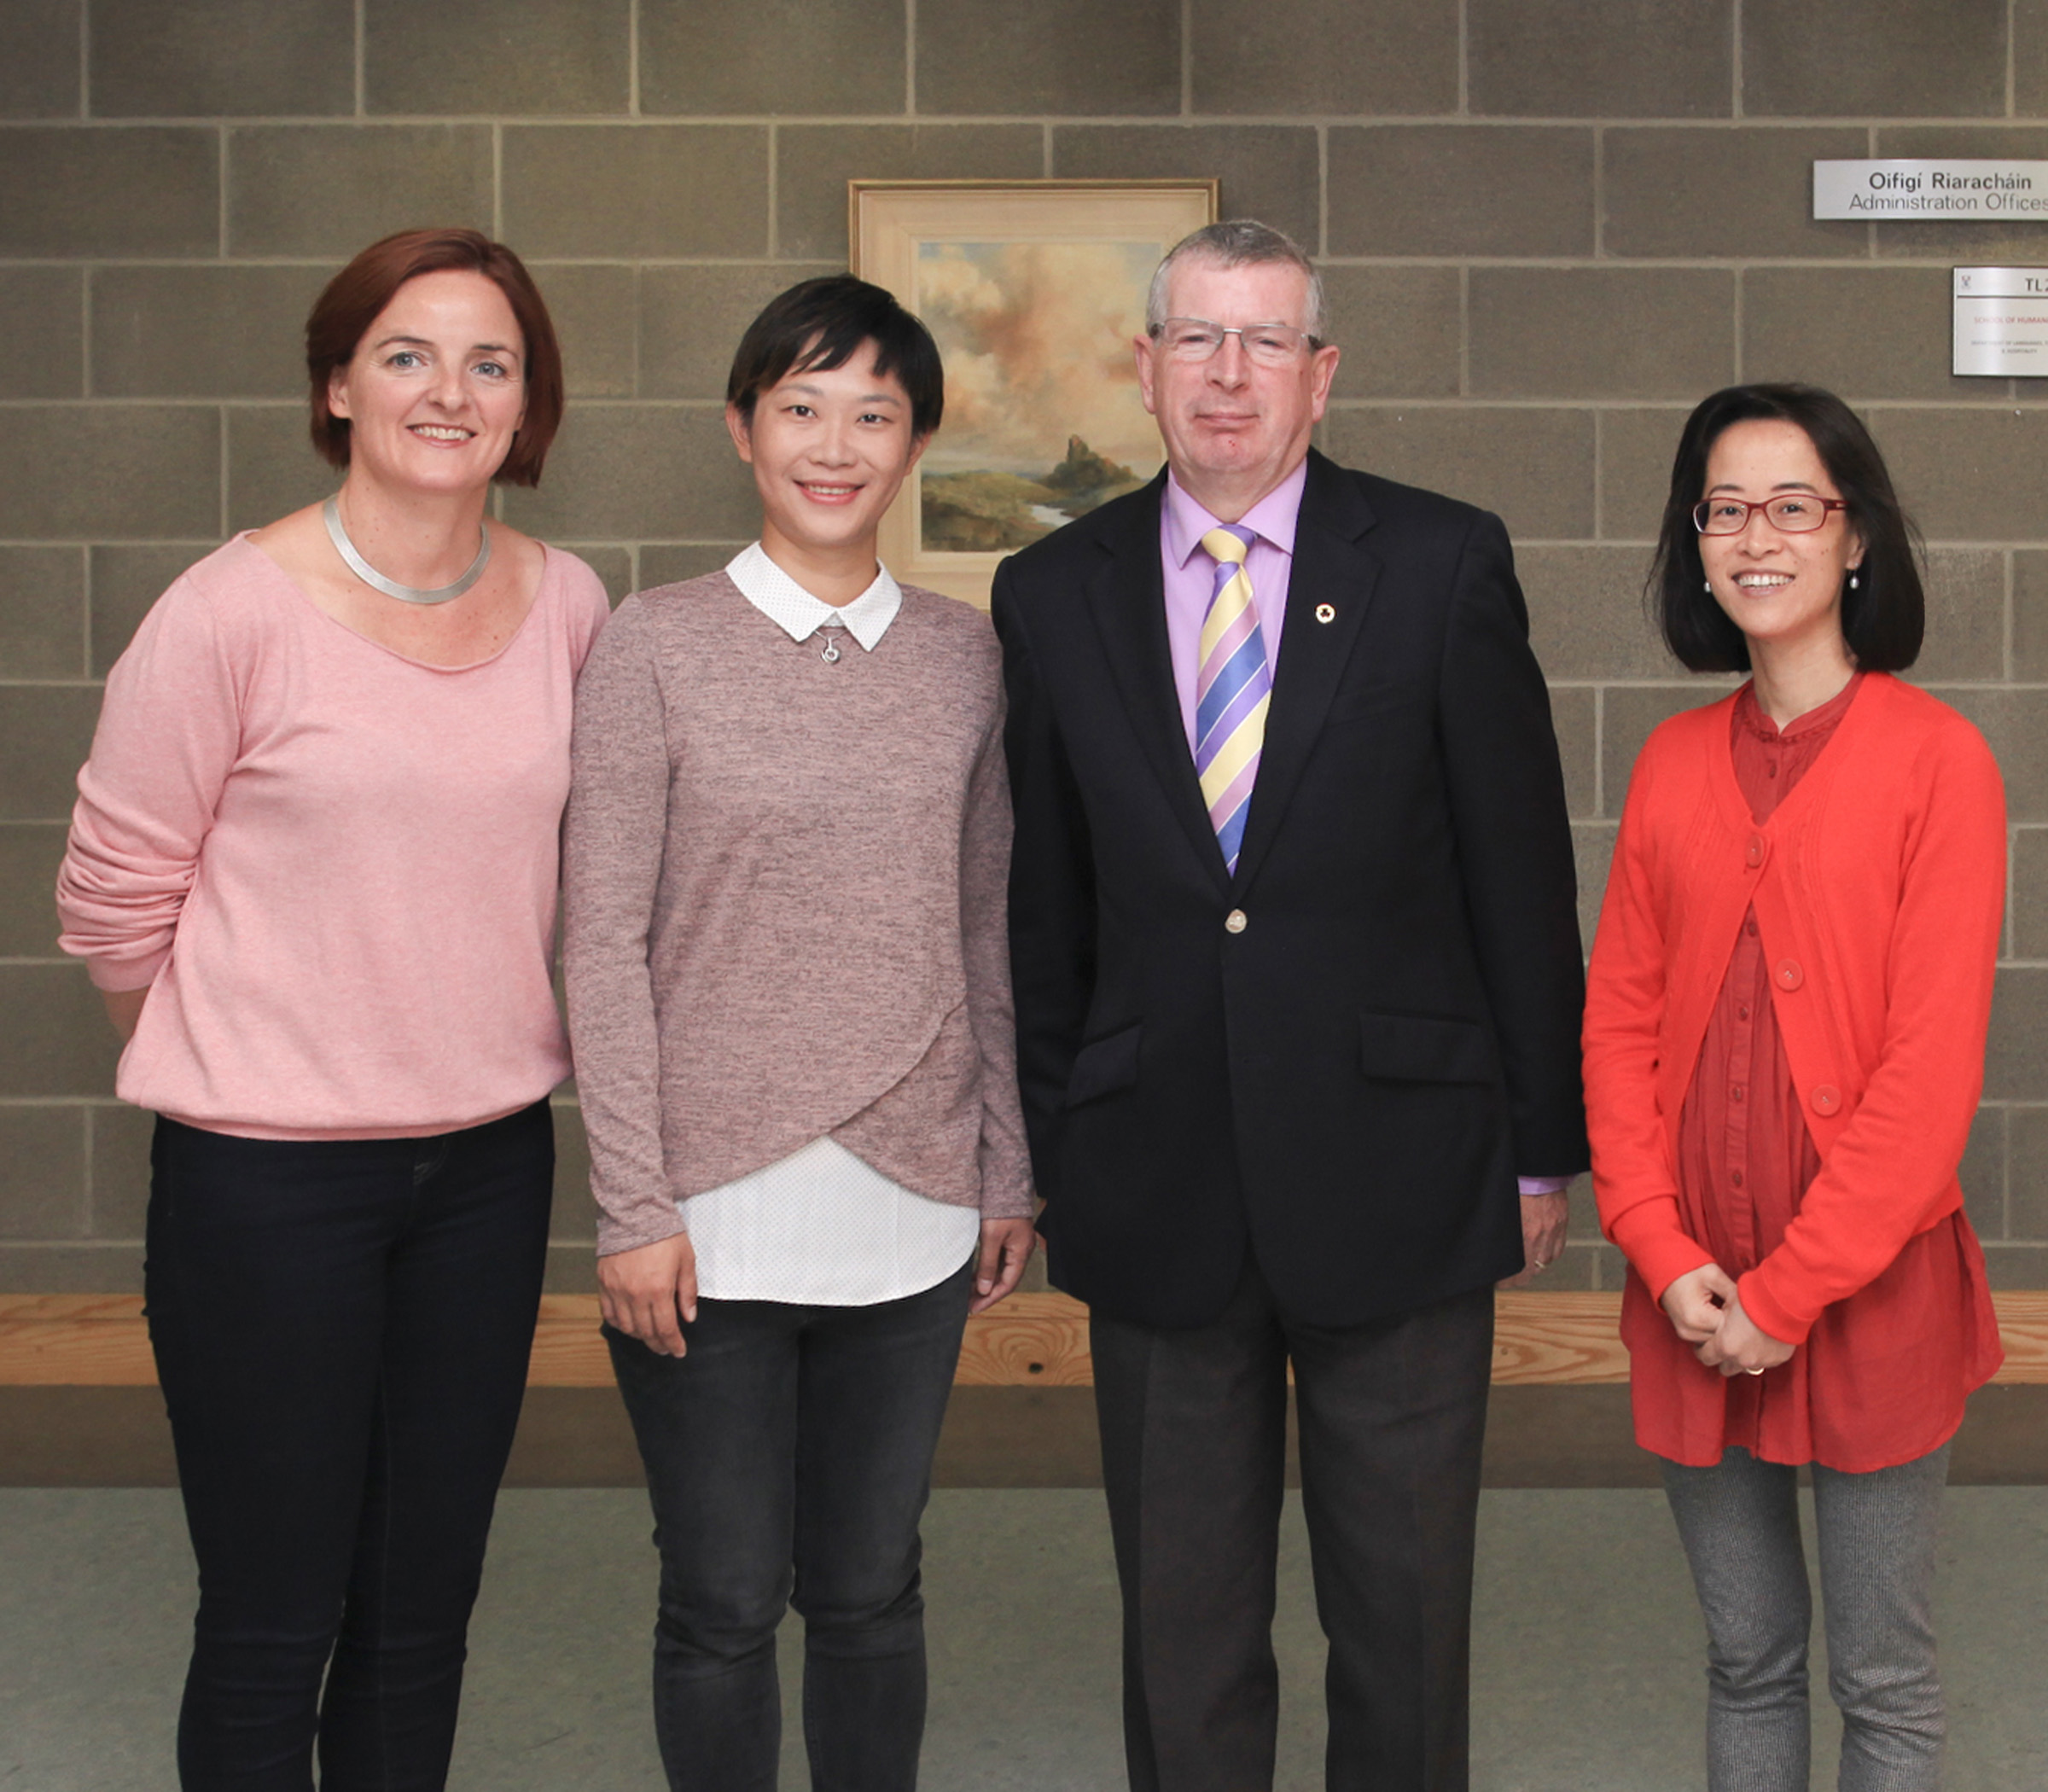 WIT staff Anne-Marie Lally, Ray Cullen and Hellen Kang Griffith welcome SIT scholar Xia Ying